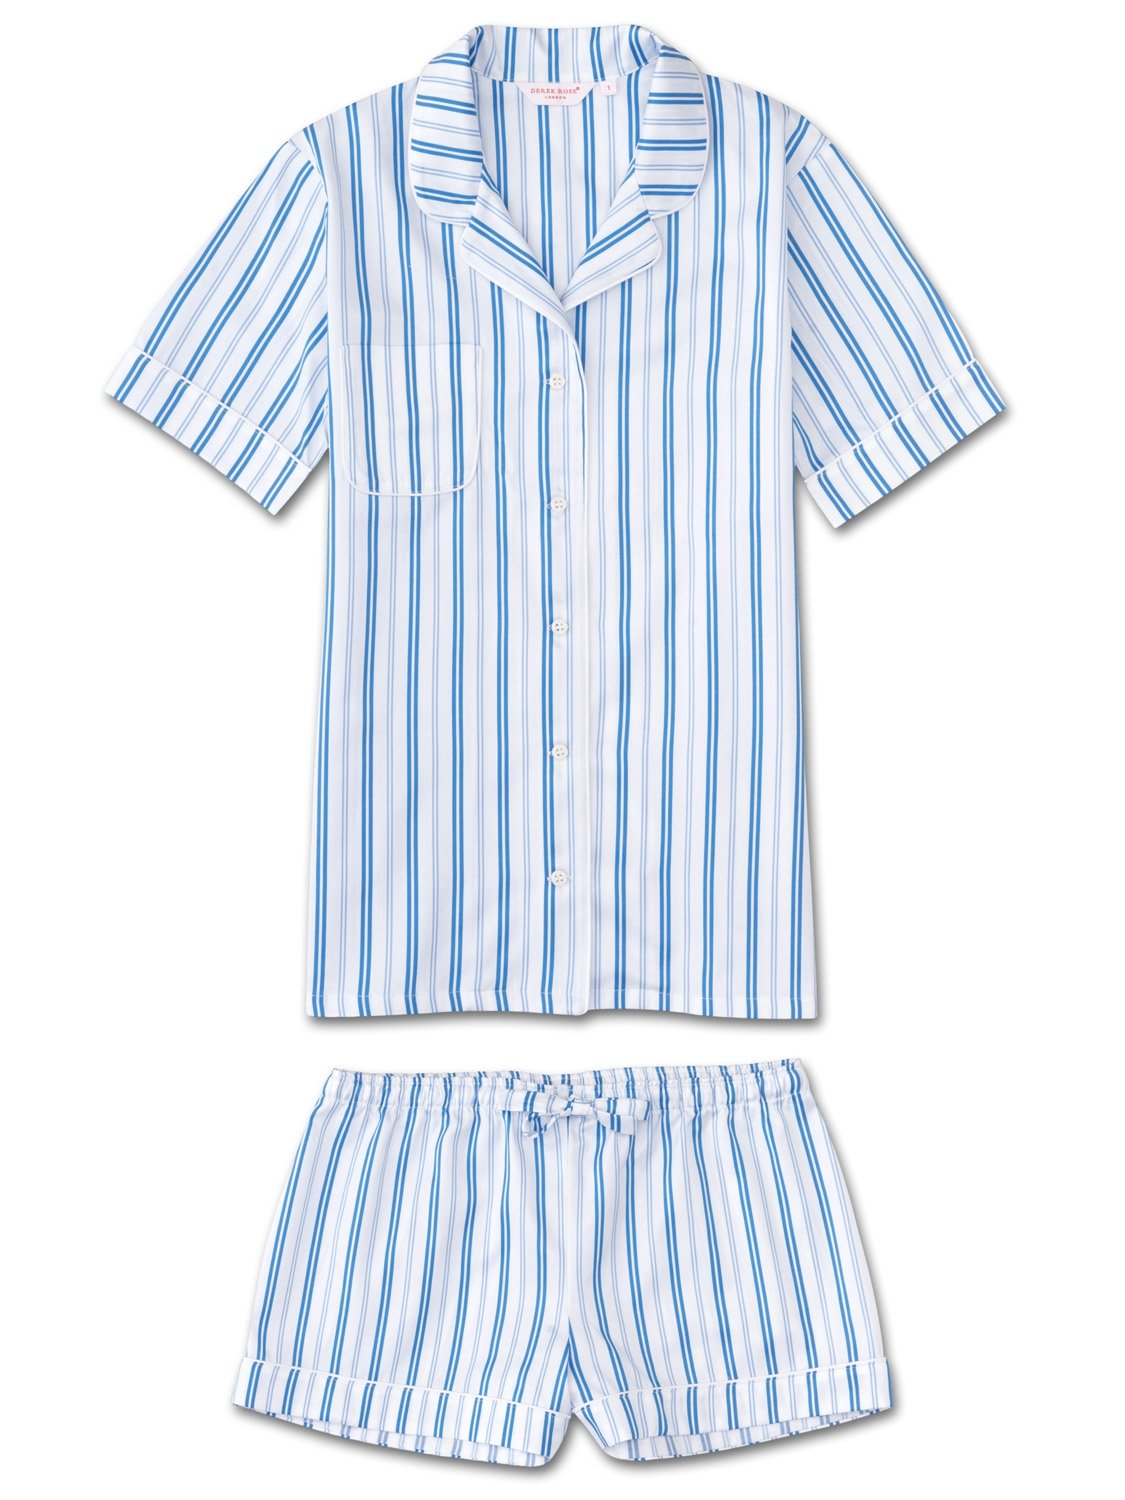 Women's Shortie Pyjamas Wellington 46 Cotton Full Satin Stripe White